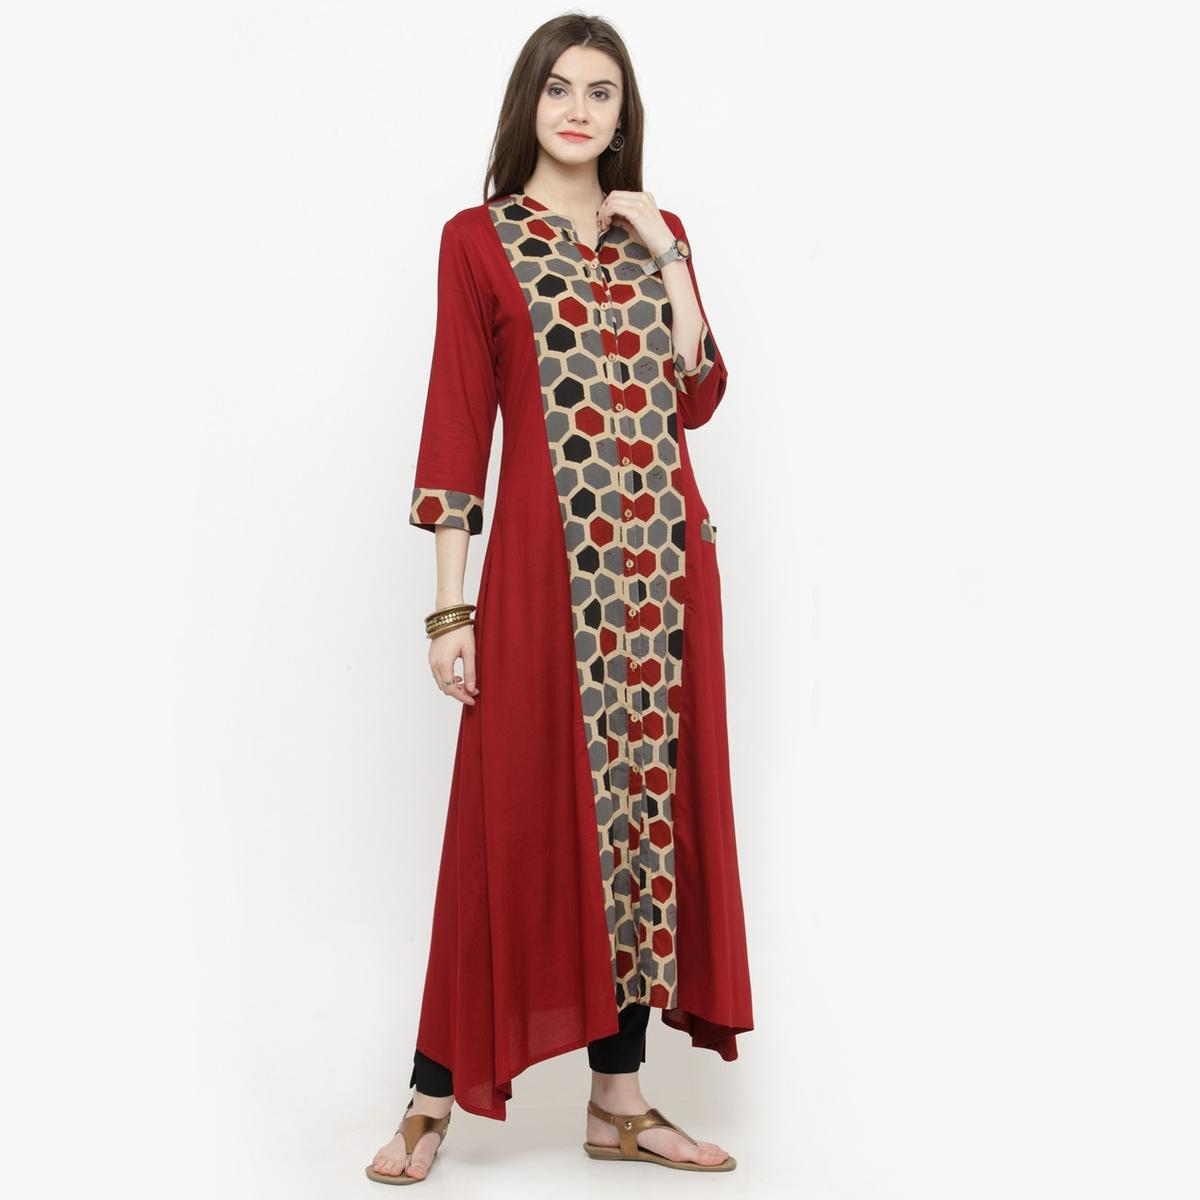 Maroon Colored Printed Rayon Kurti